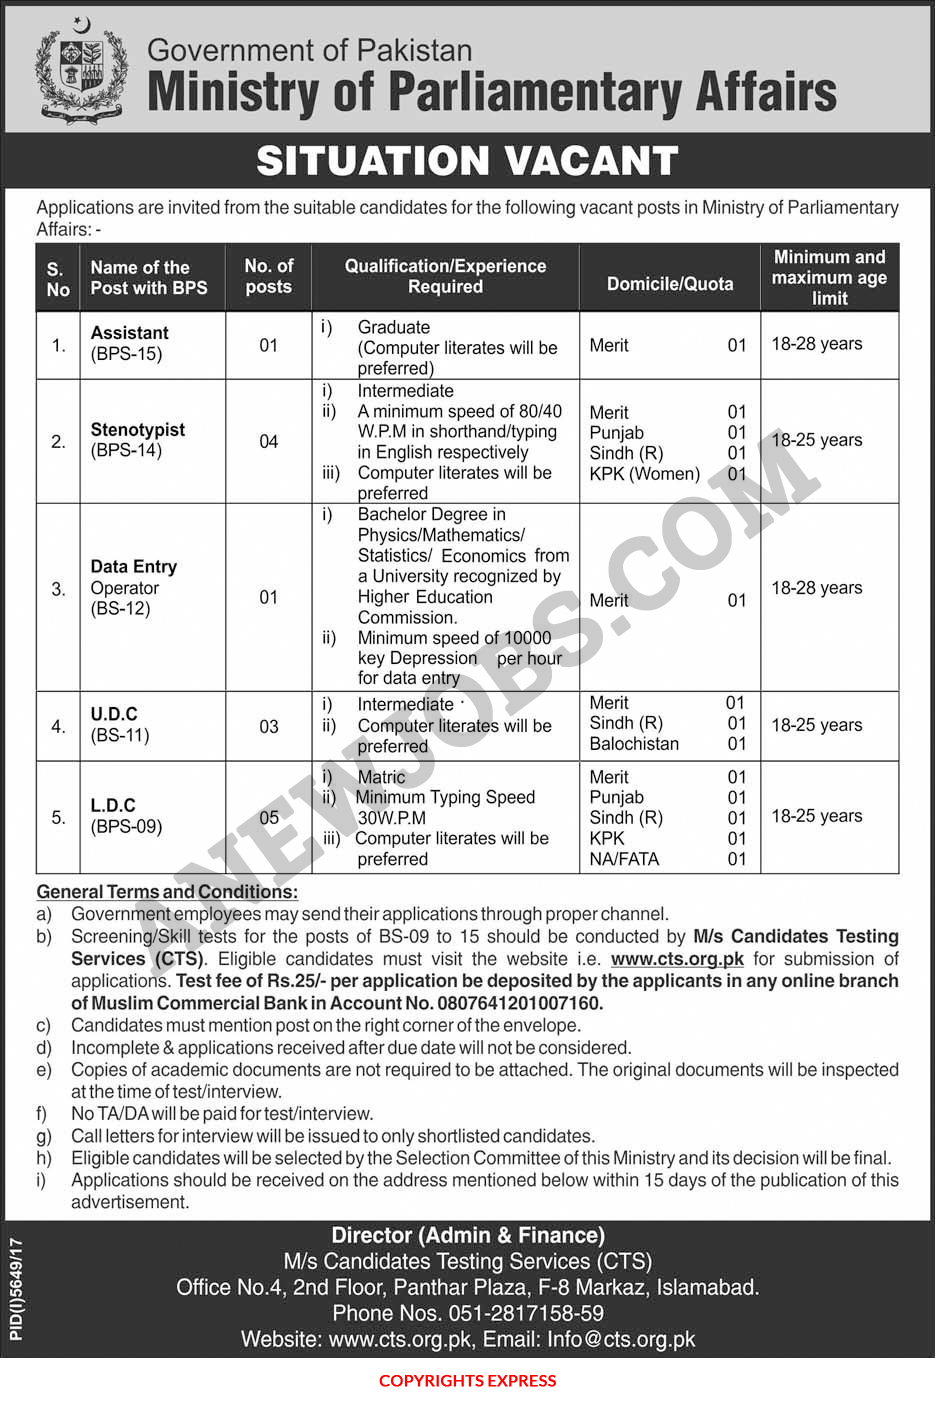 Ministry of Parliamentary Affairs Jobs 2018 [14+] for